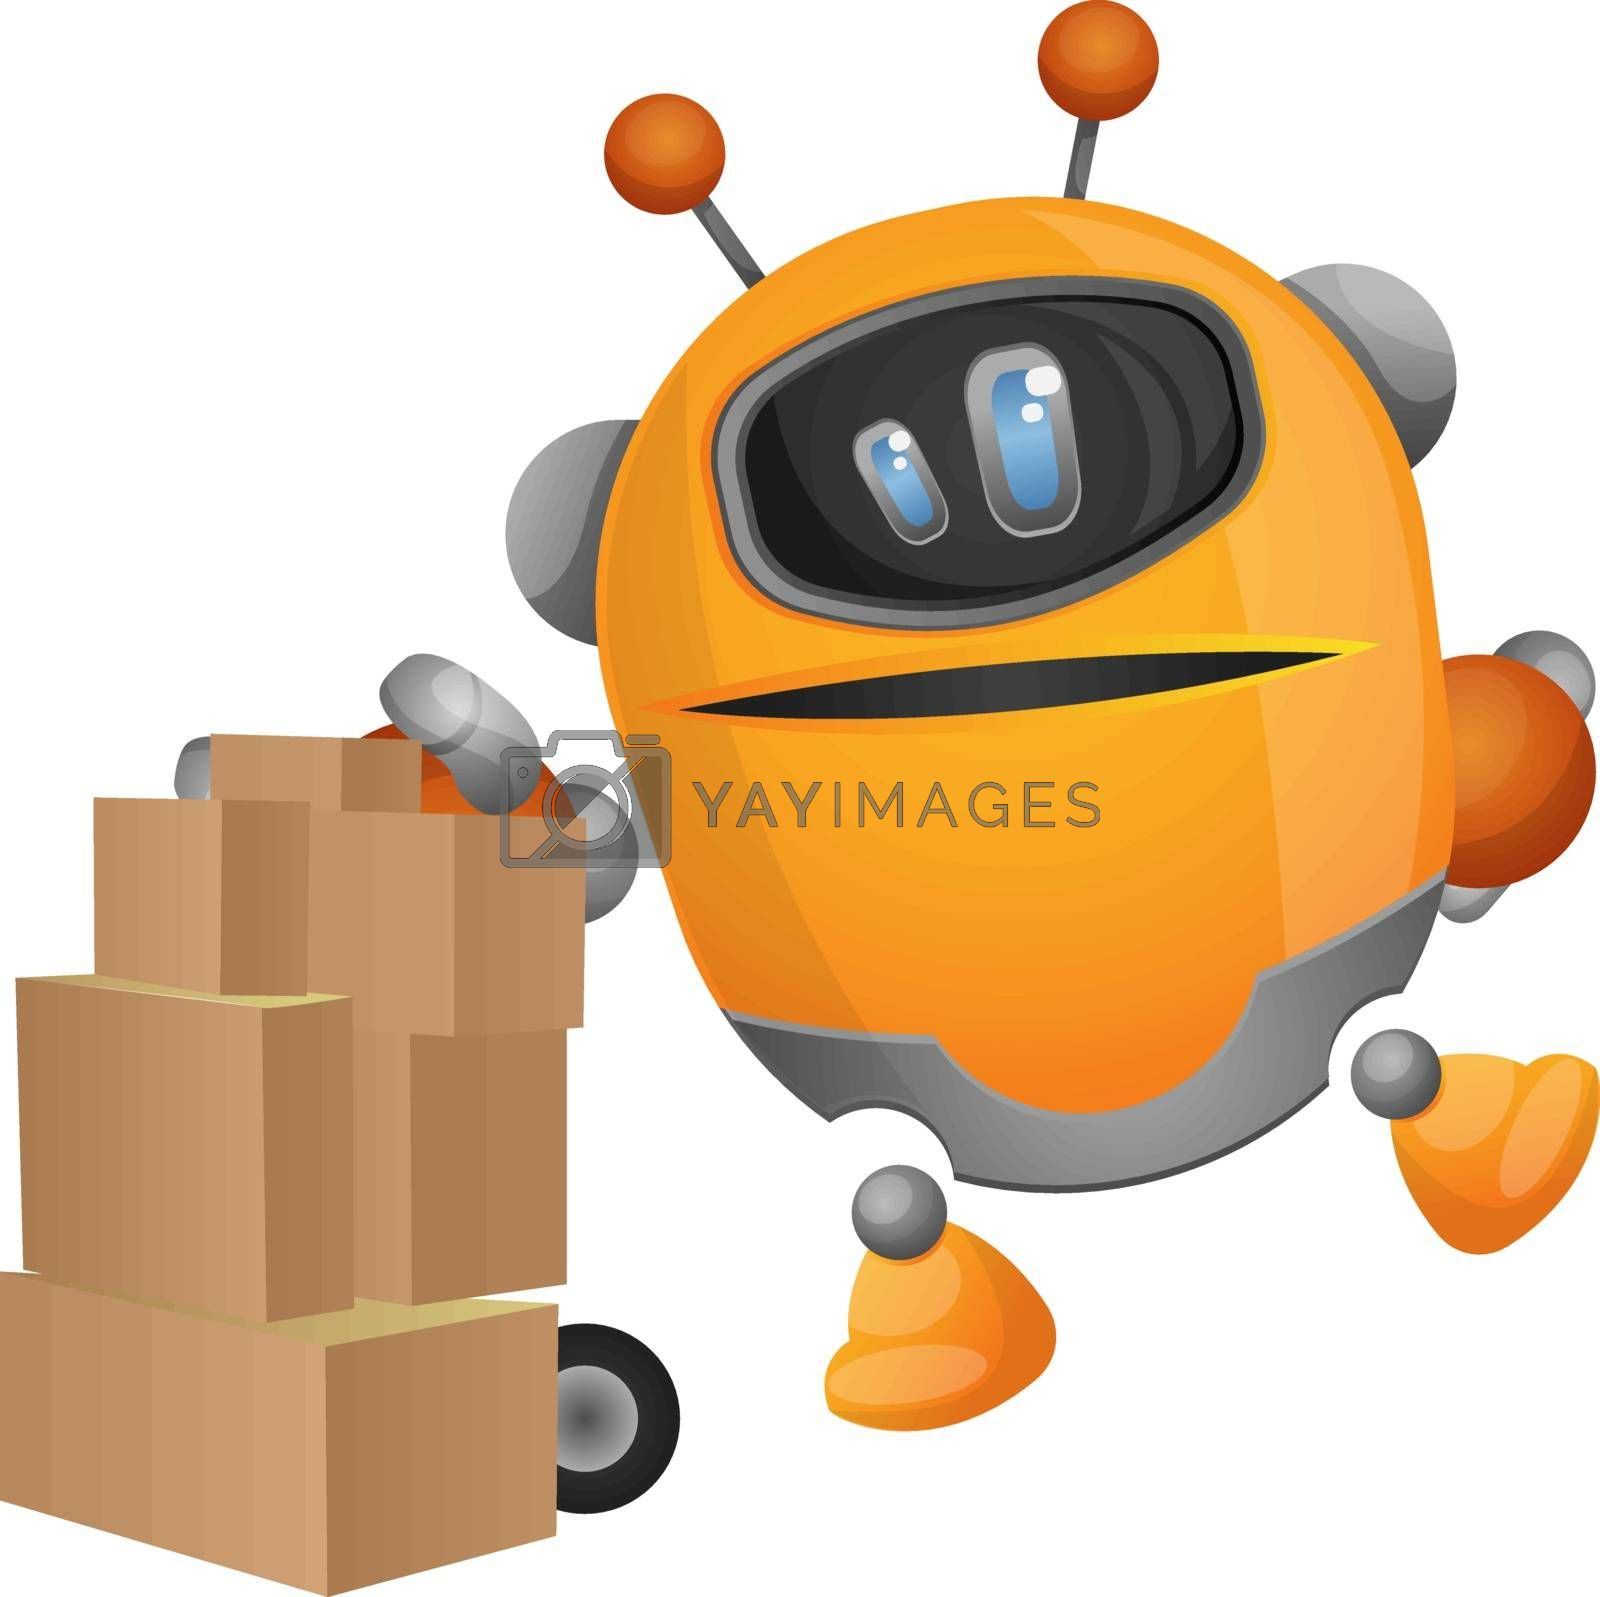 Royalty free image of Robot carrying packages illustration vector on white background by Morphart